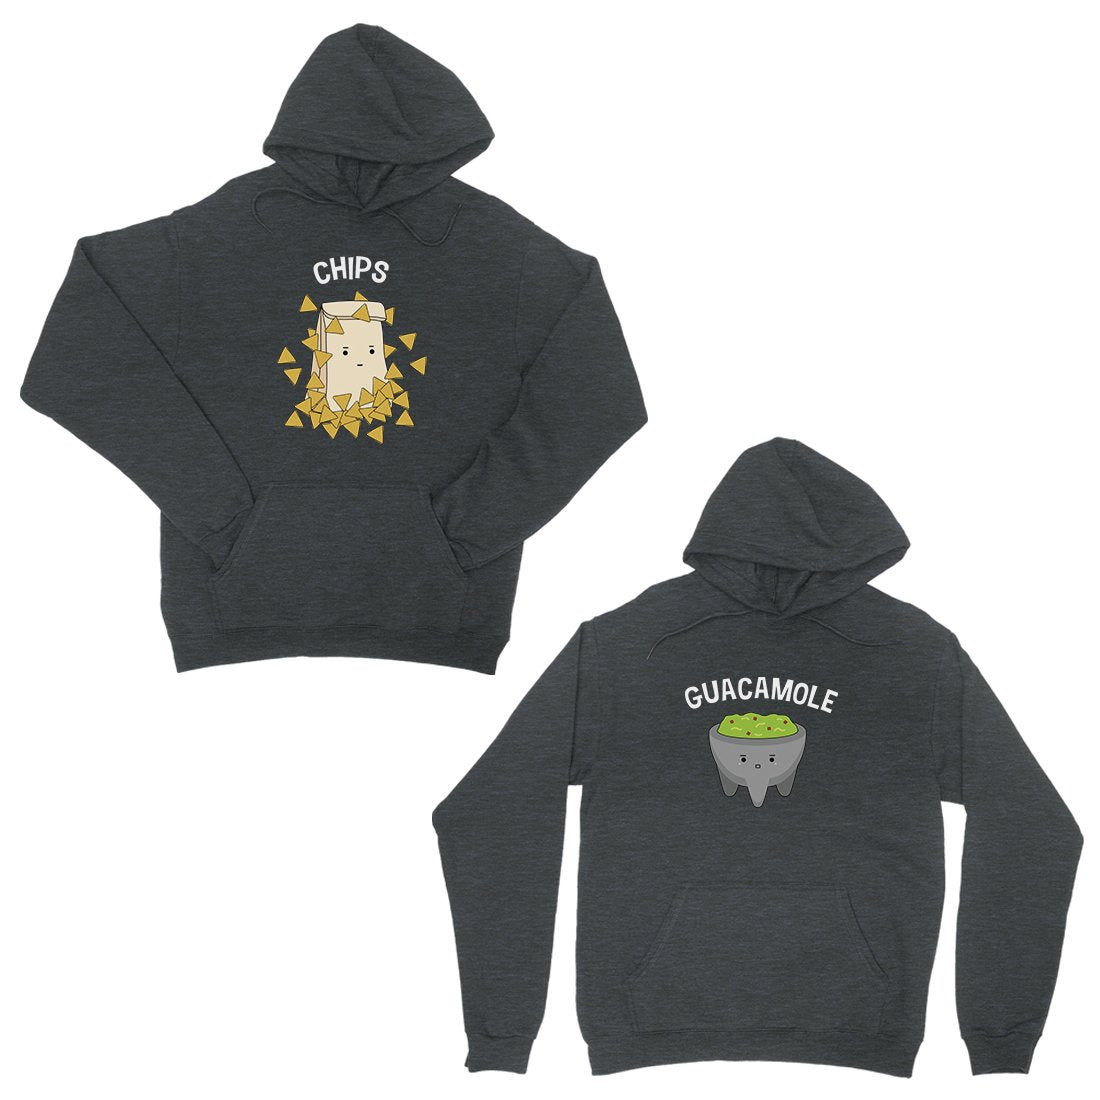 Chips & Guacamole Dark Grey Matching Couple Hoodies For Newlyweds